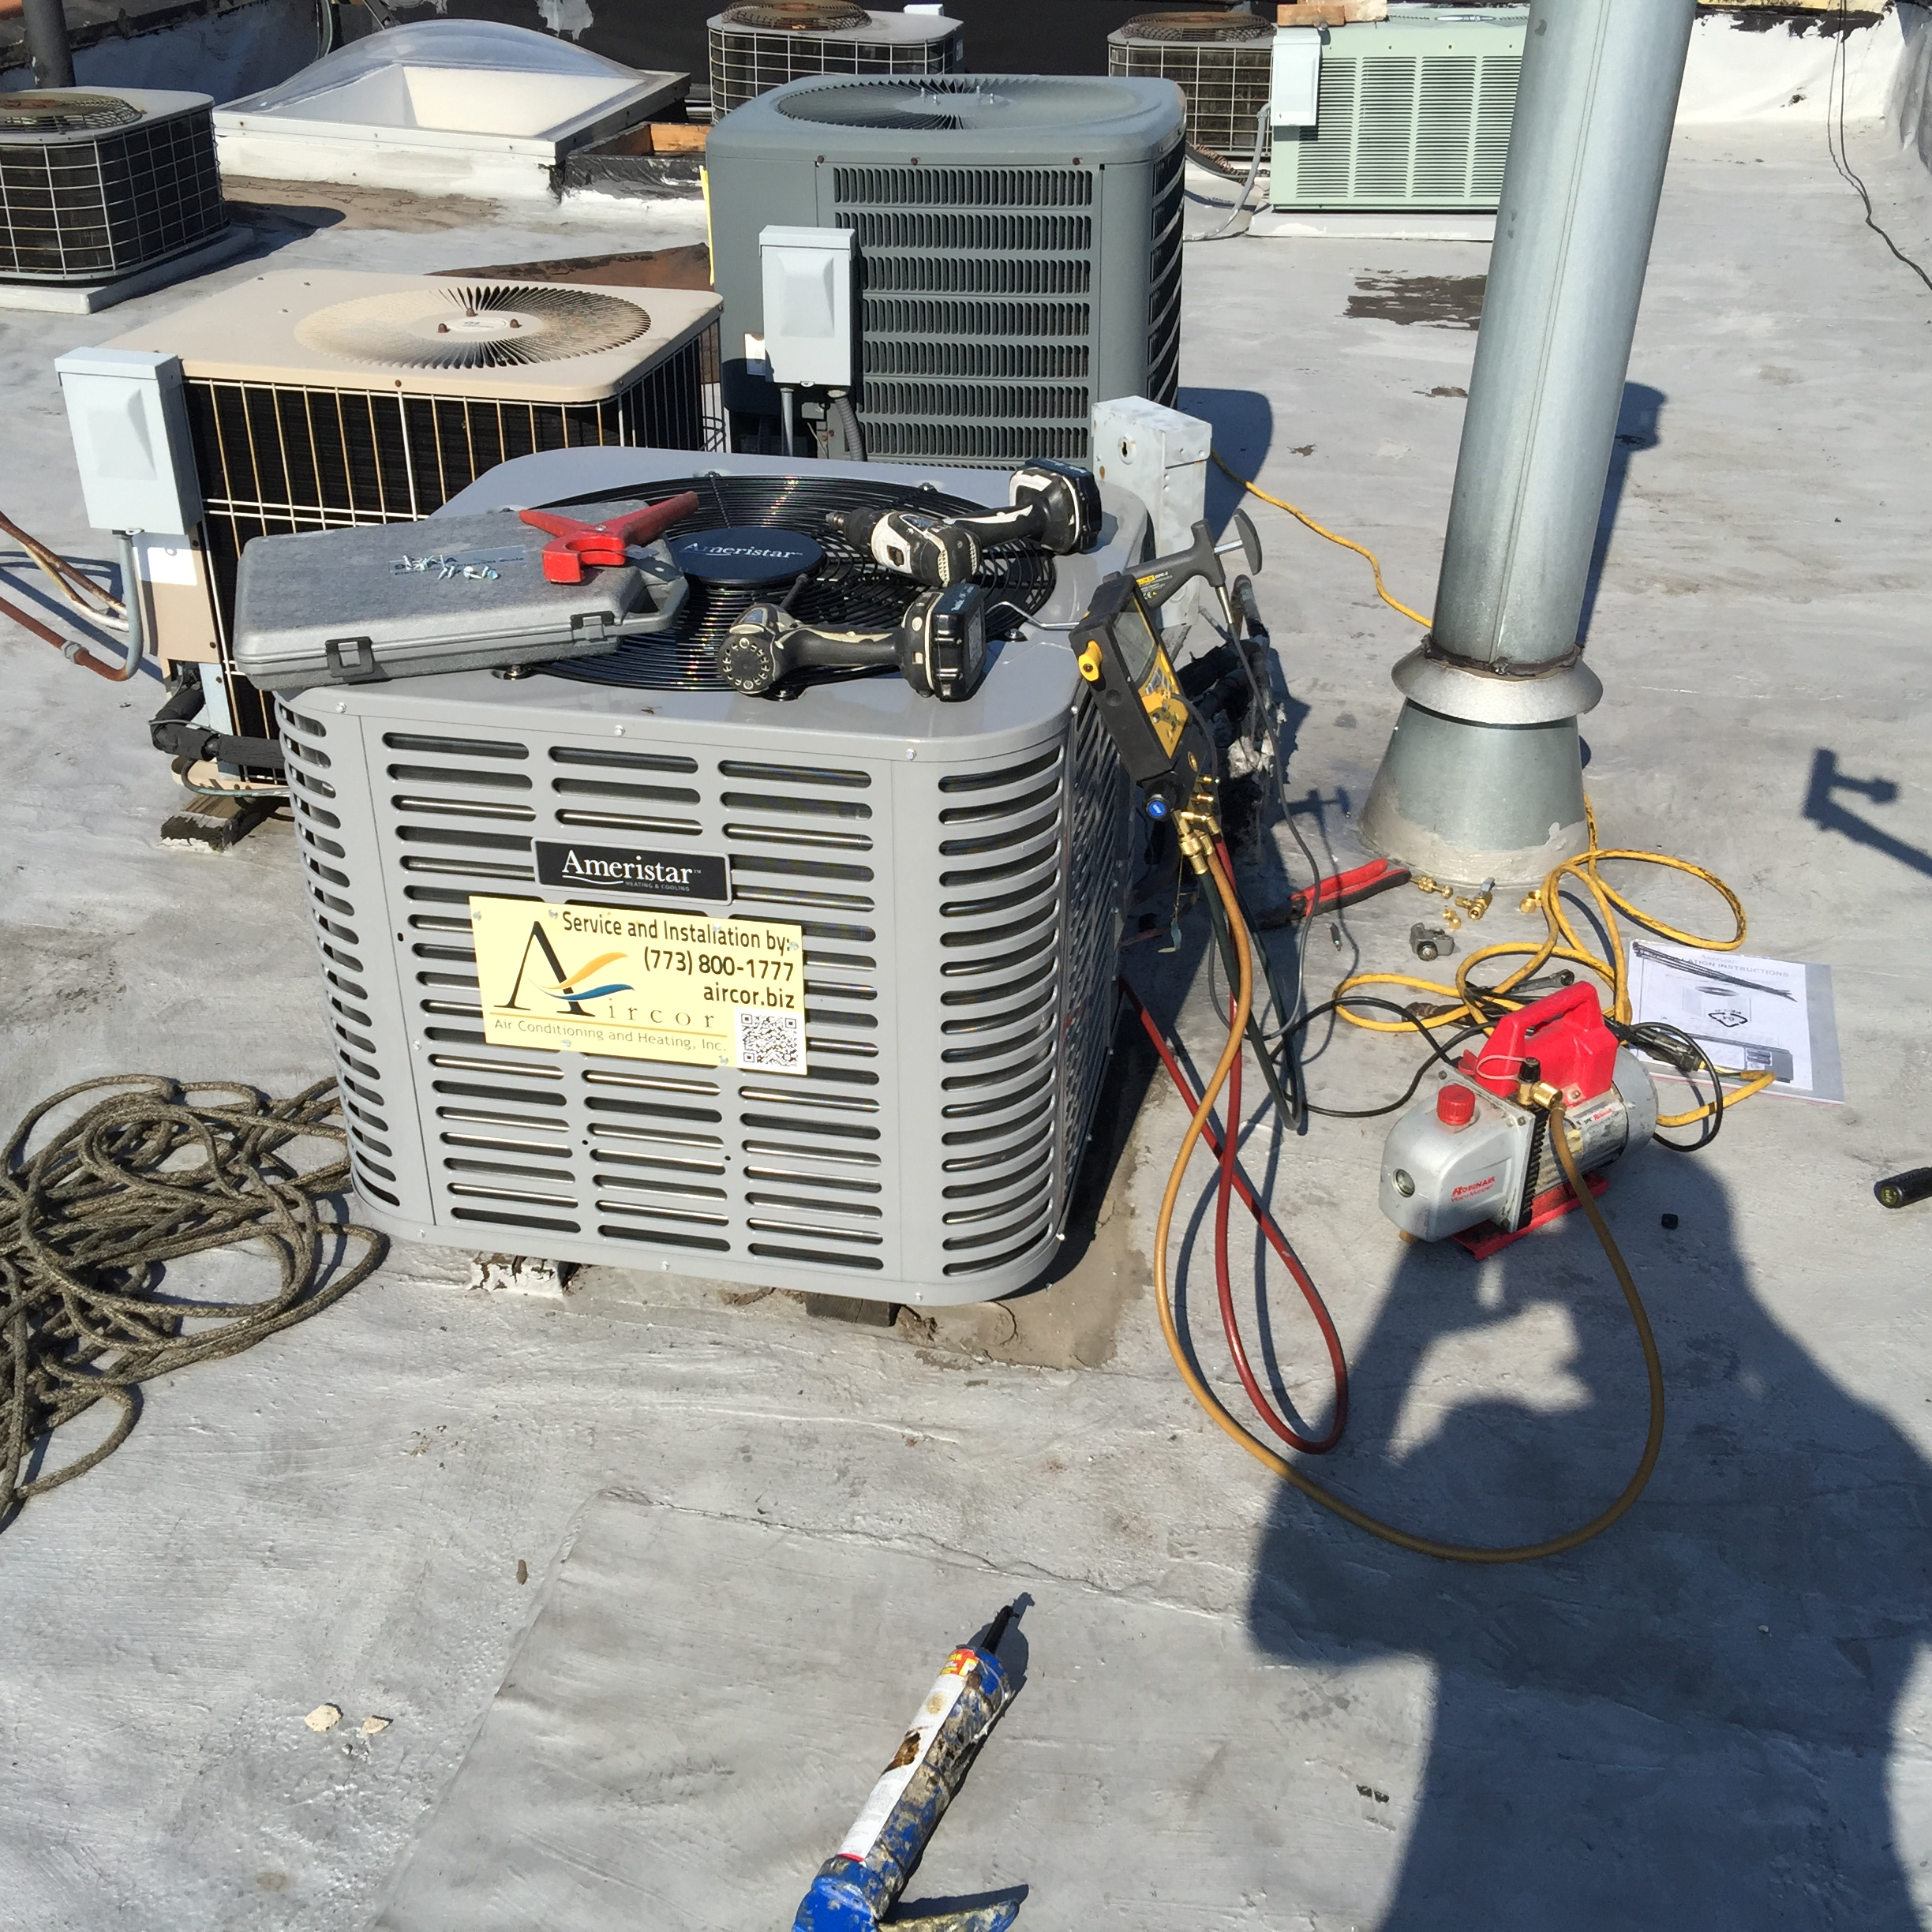 Aircor Air Conditioning Installation AC Replacement 875 W Cornelia Ave Chicago, IL 60657 Lake View